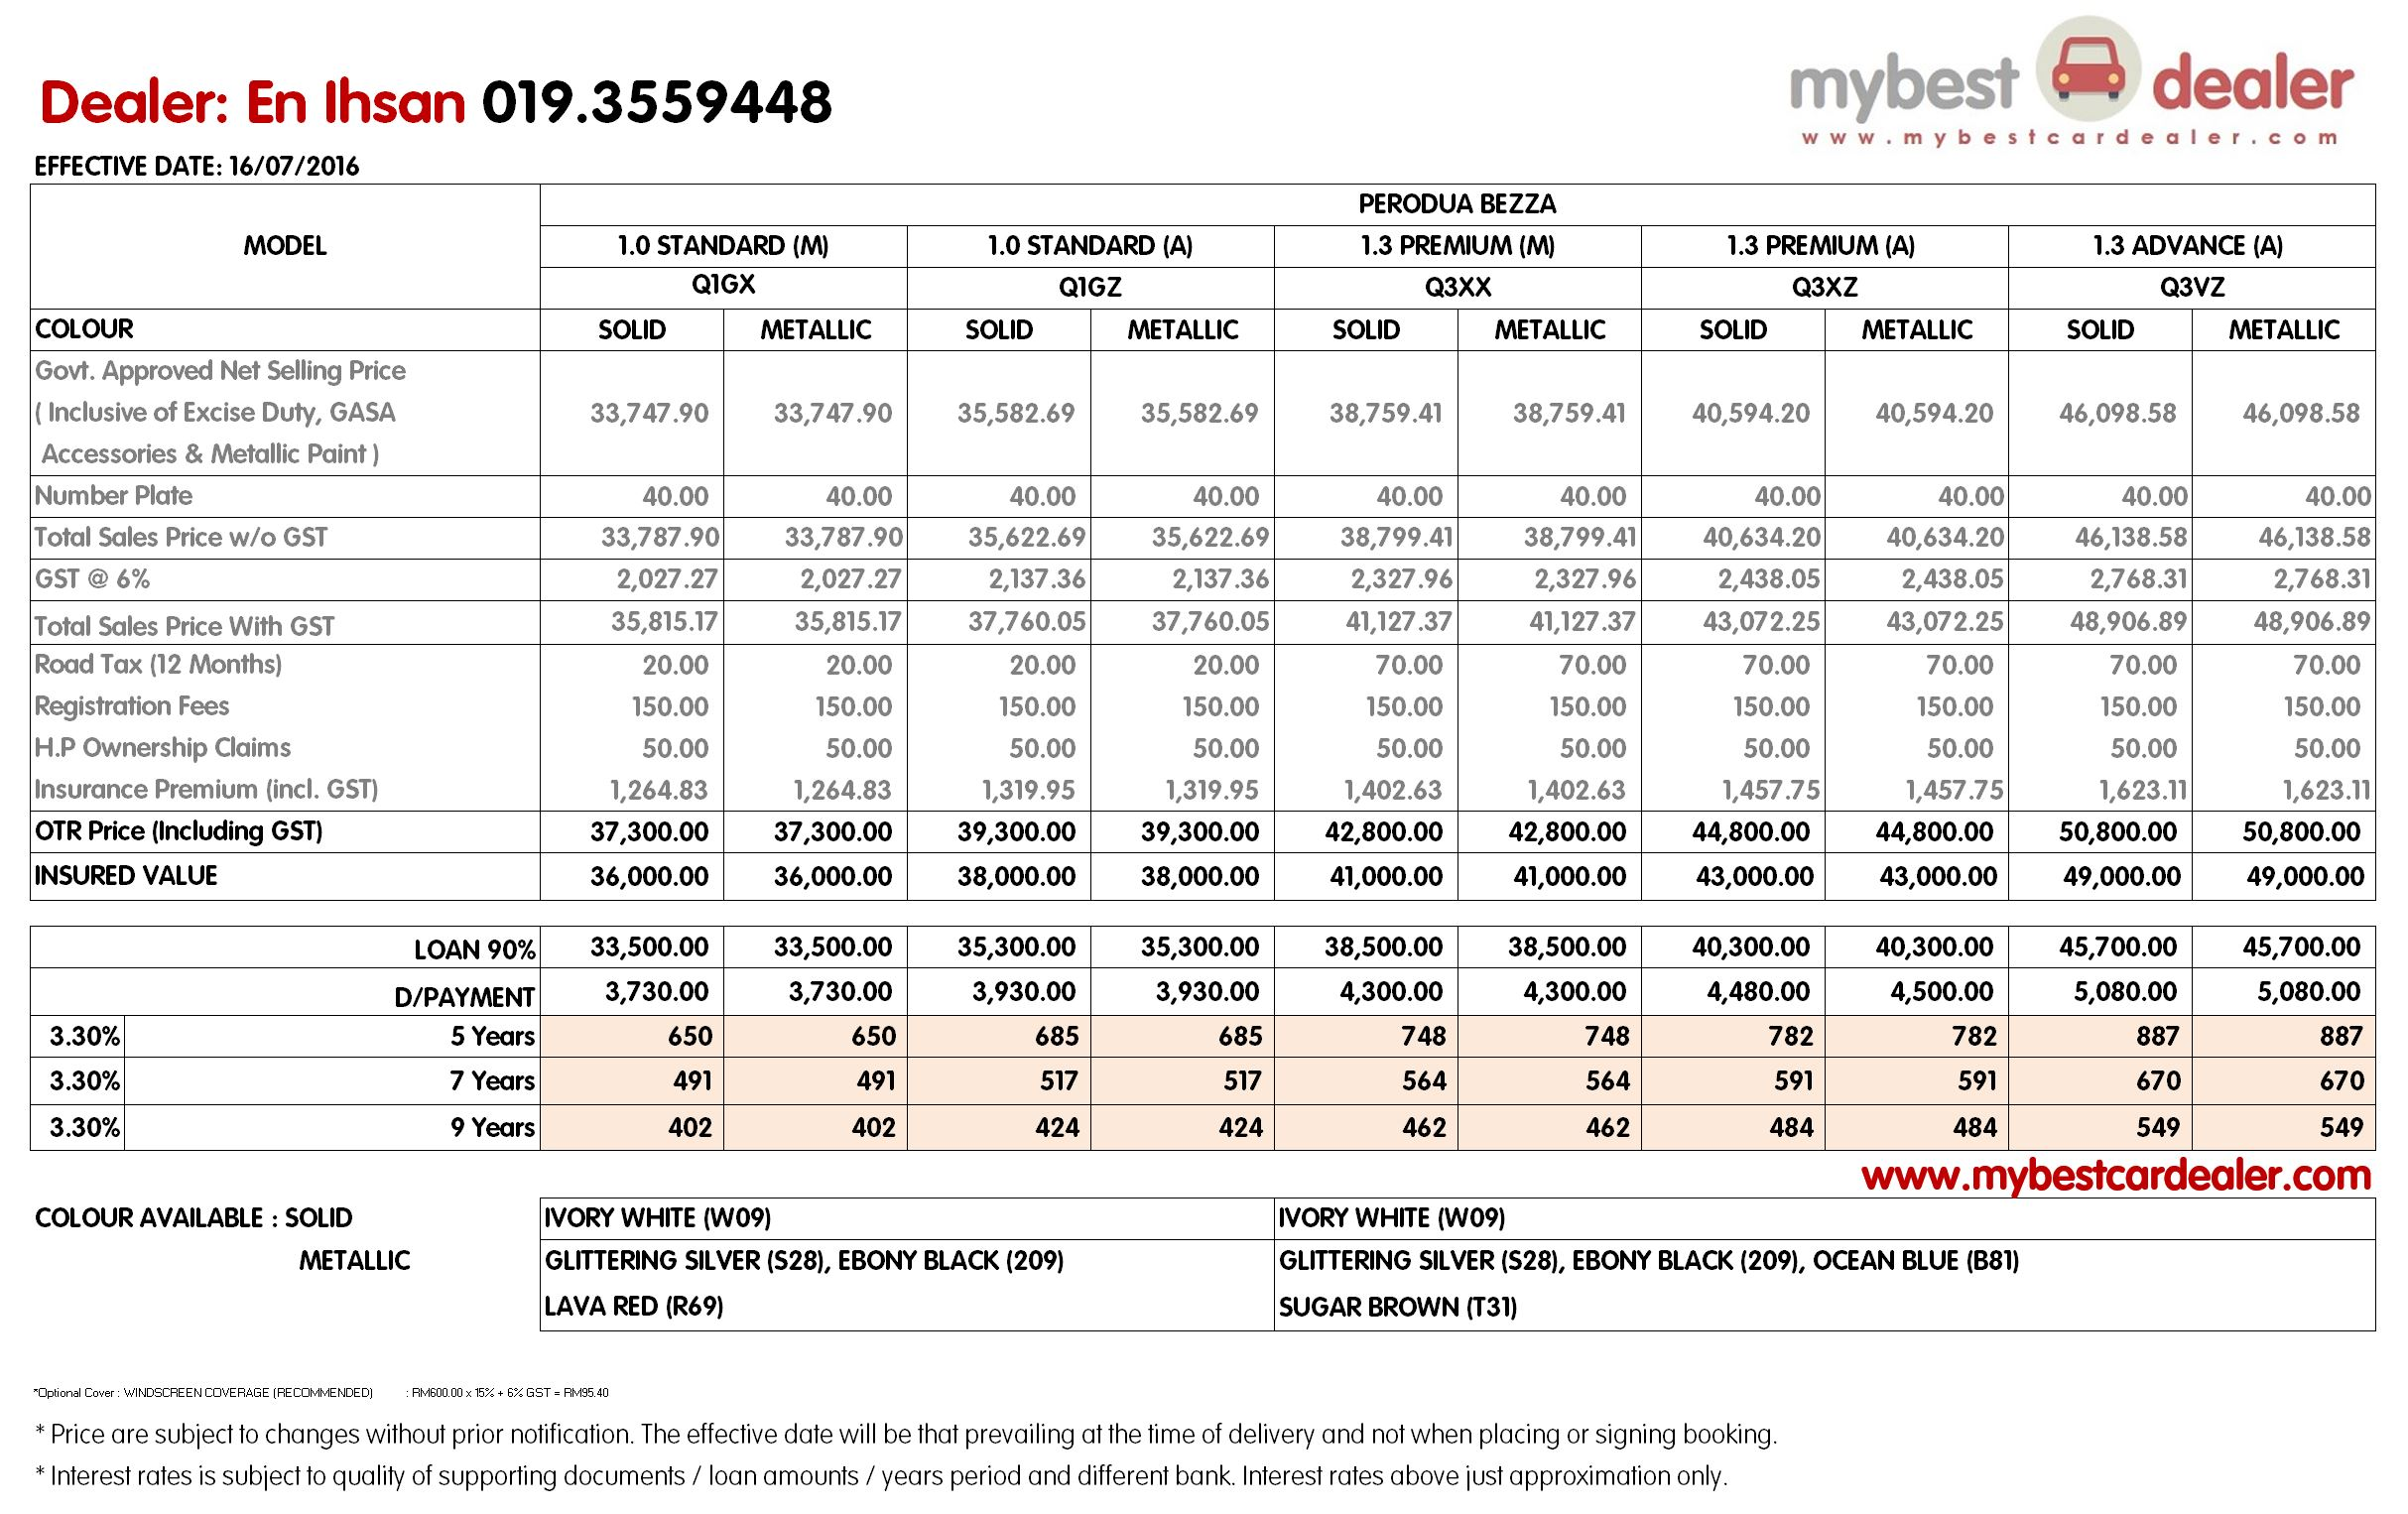 Perodua Bezza Full Price List 187 My Best Car Dealer